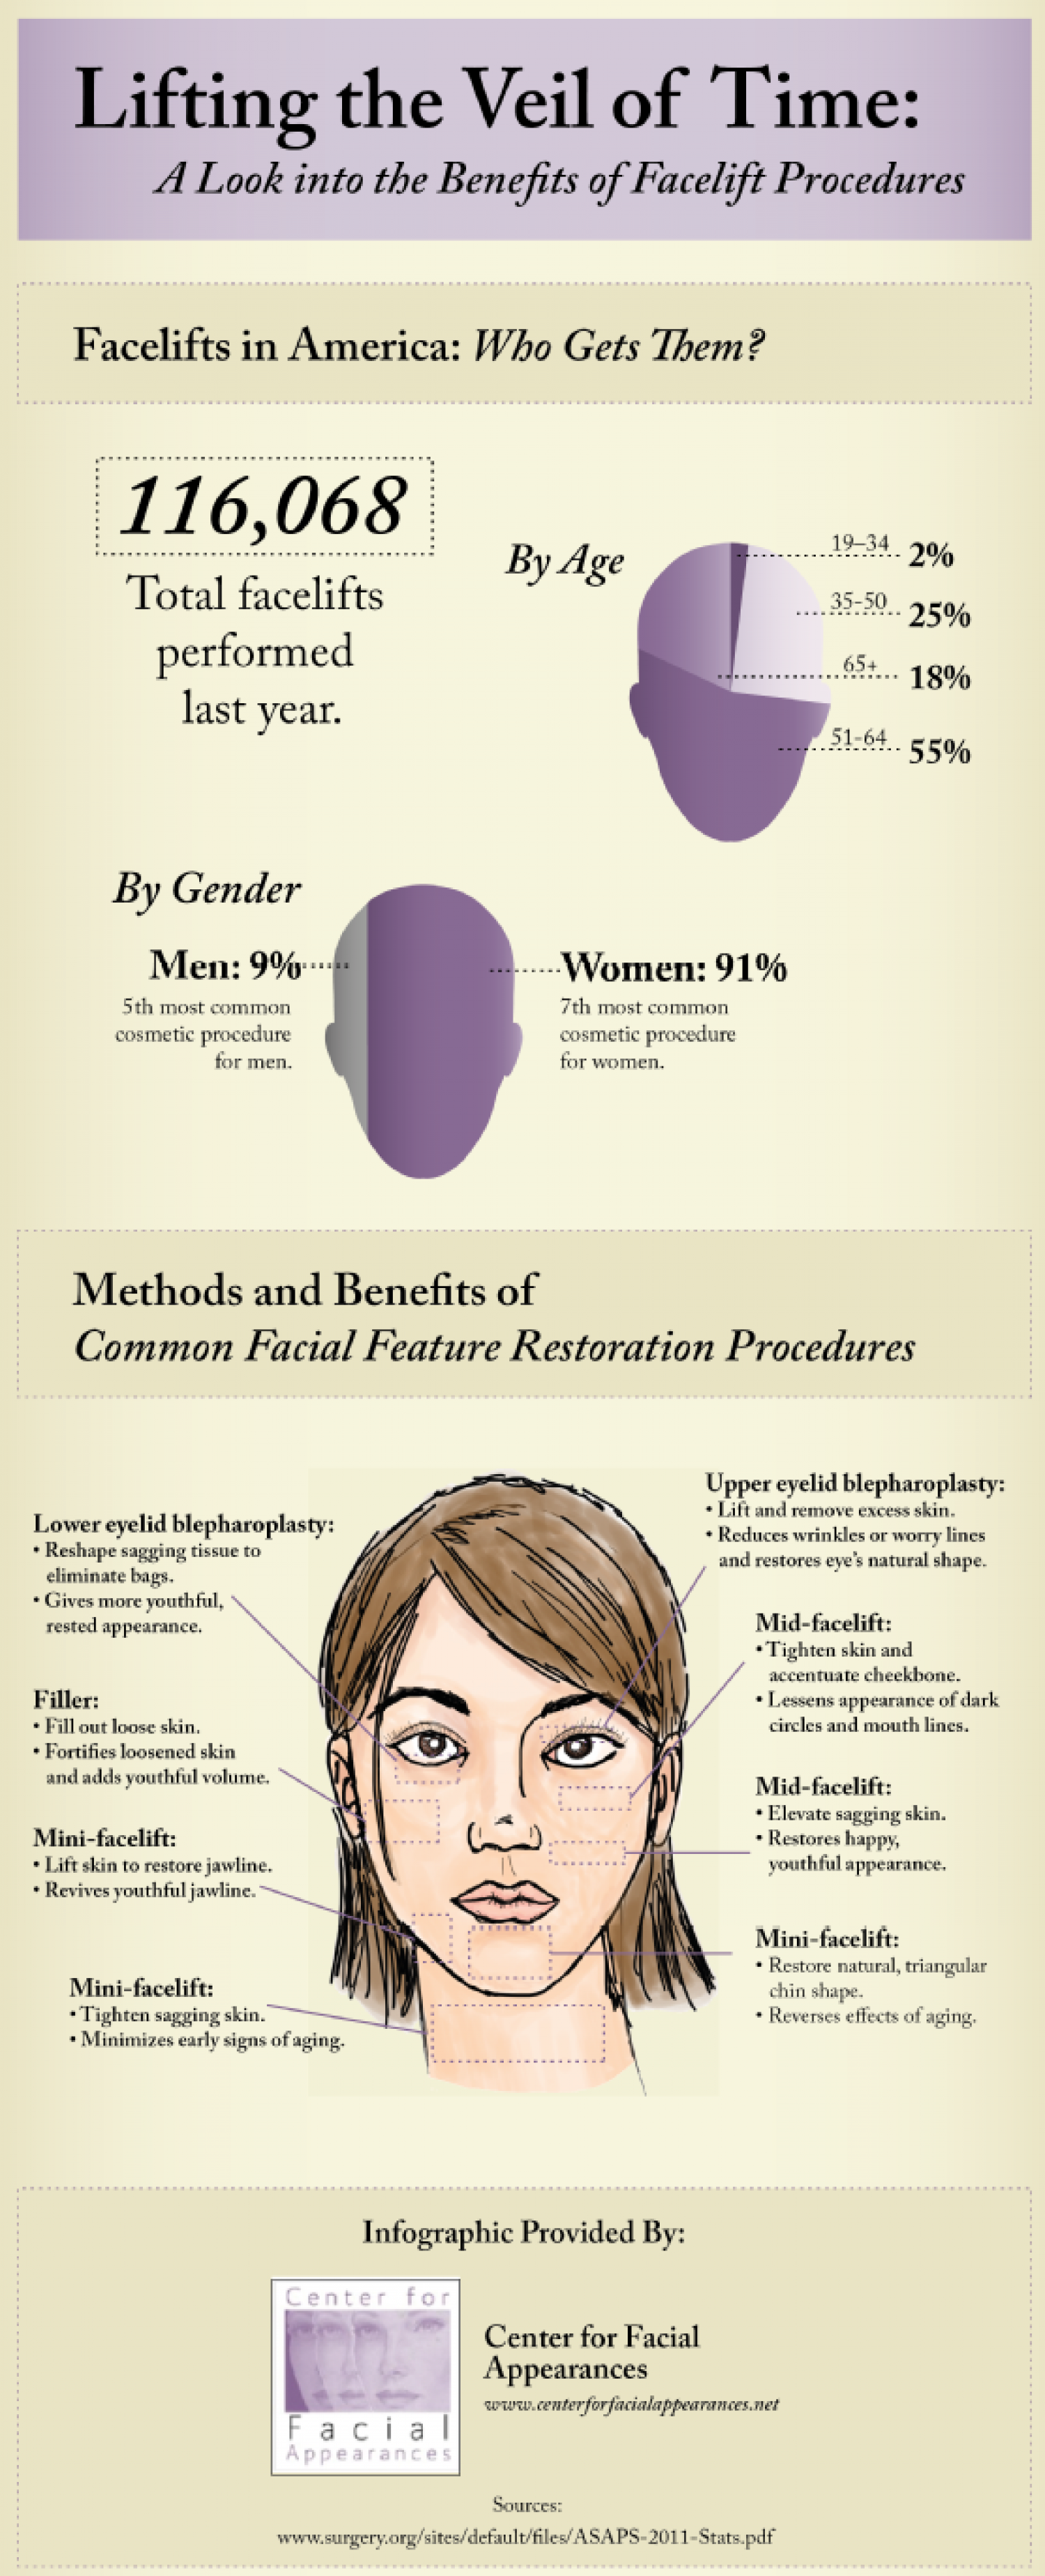 Lifting the Veil of Time: A Look into the Benefits of Facelift Procedures Infographic